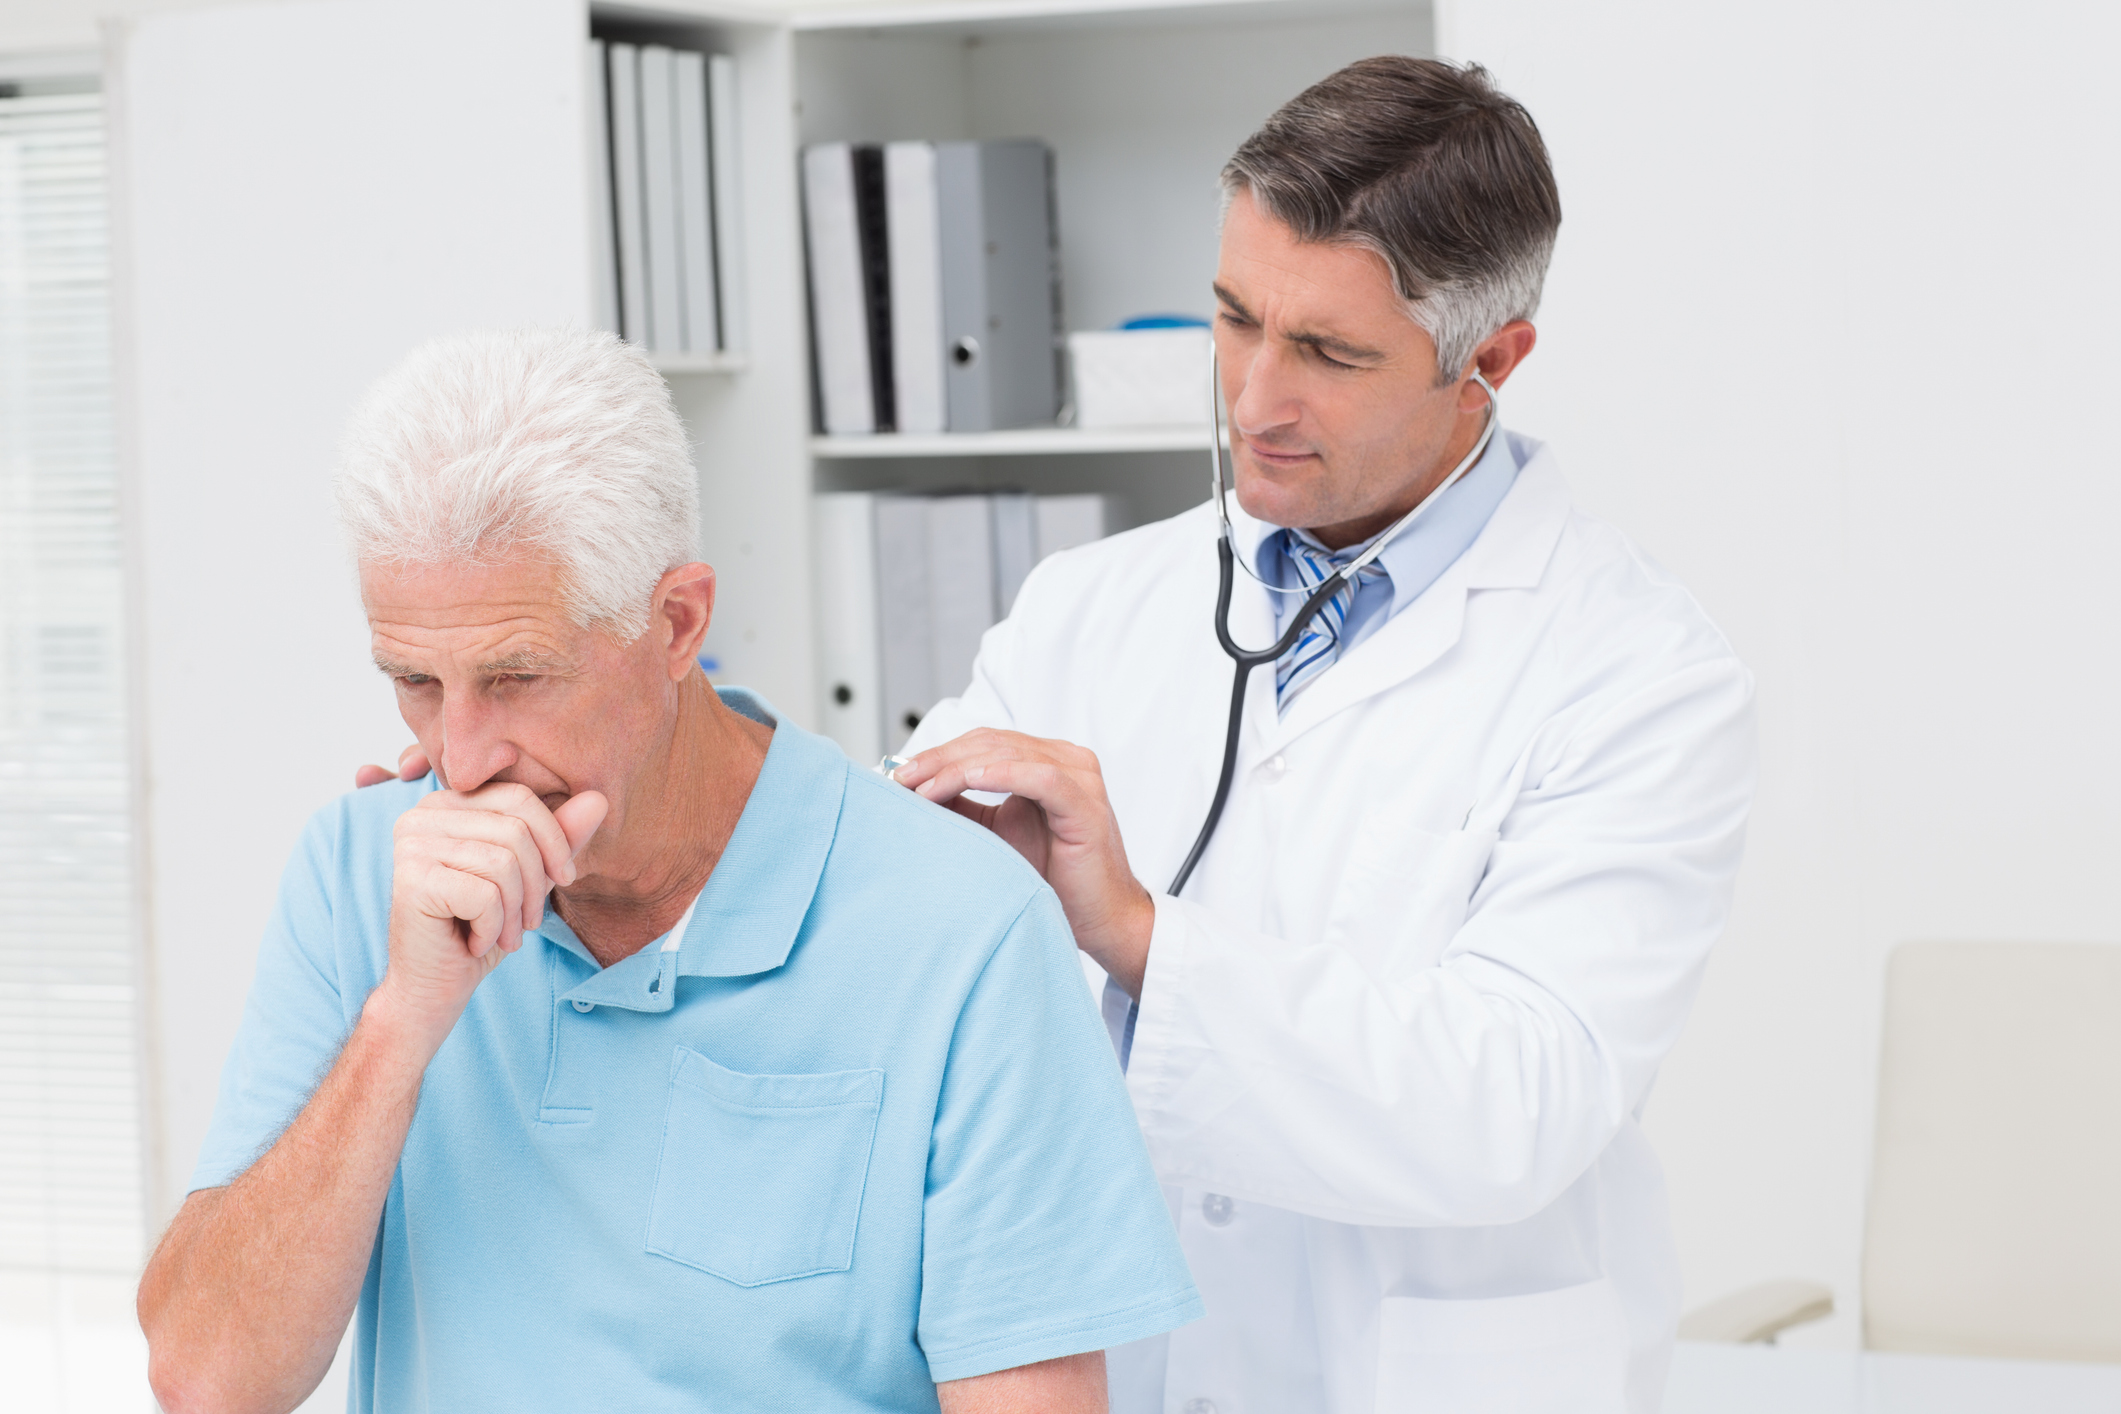 Doctor listening to patient's lungs as the patient coughs